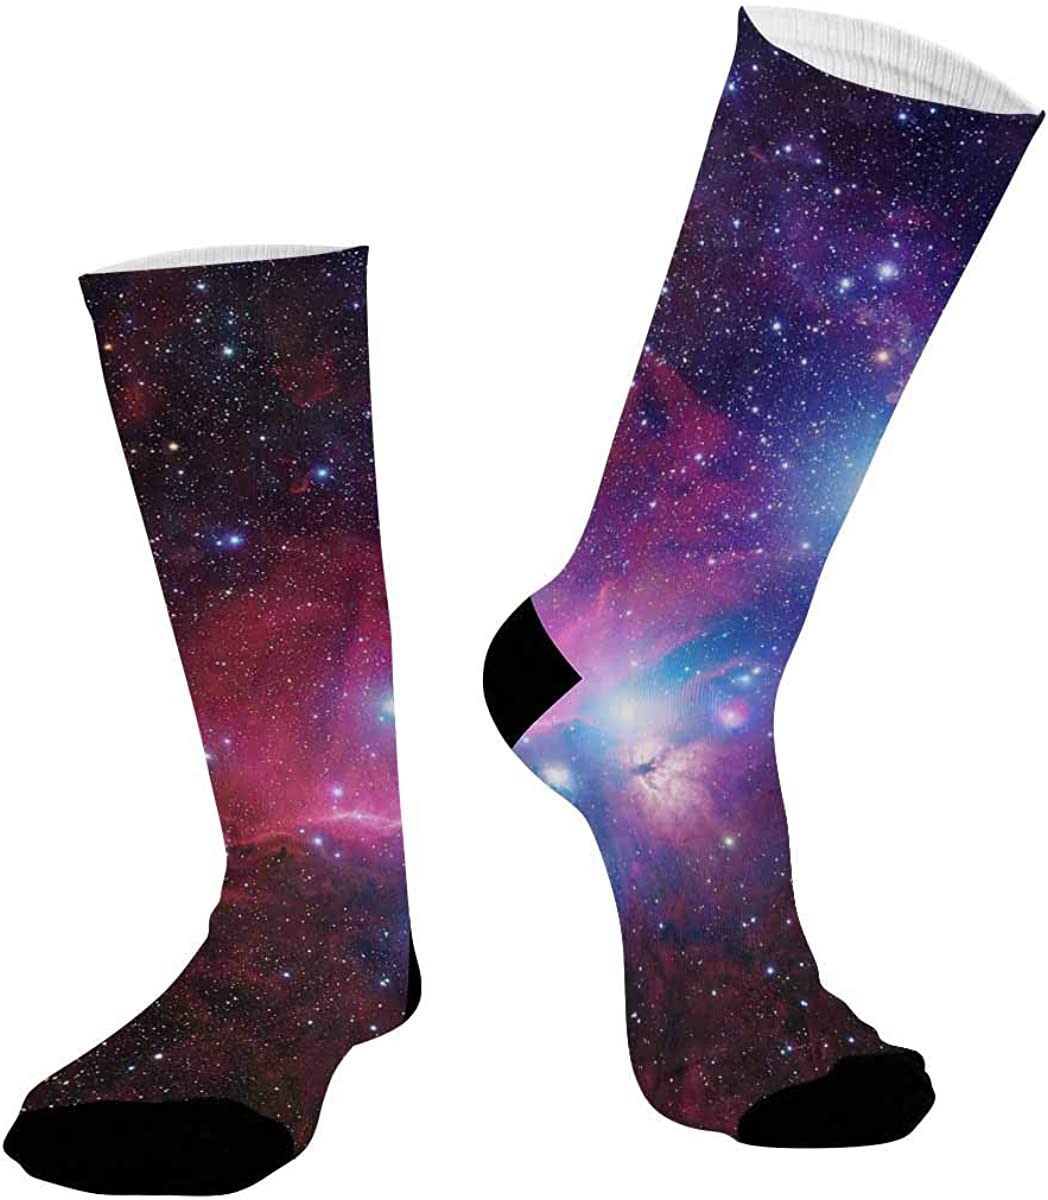 INTERESTPRINT Sublimated Hiking Dress Athletic Crew Socks Universe Filled with Stars